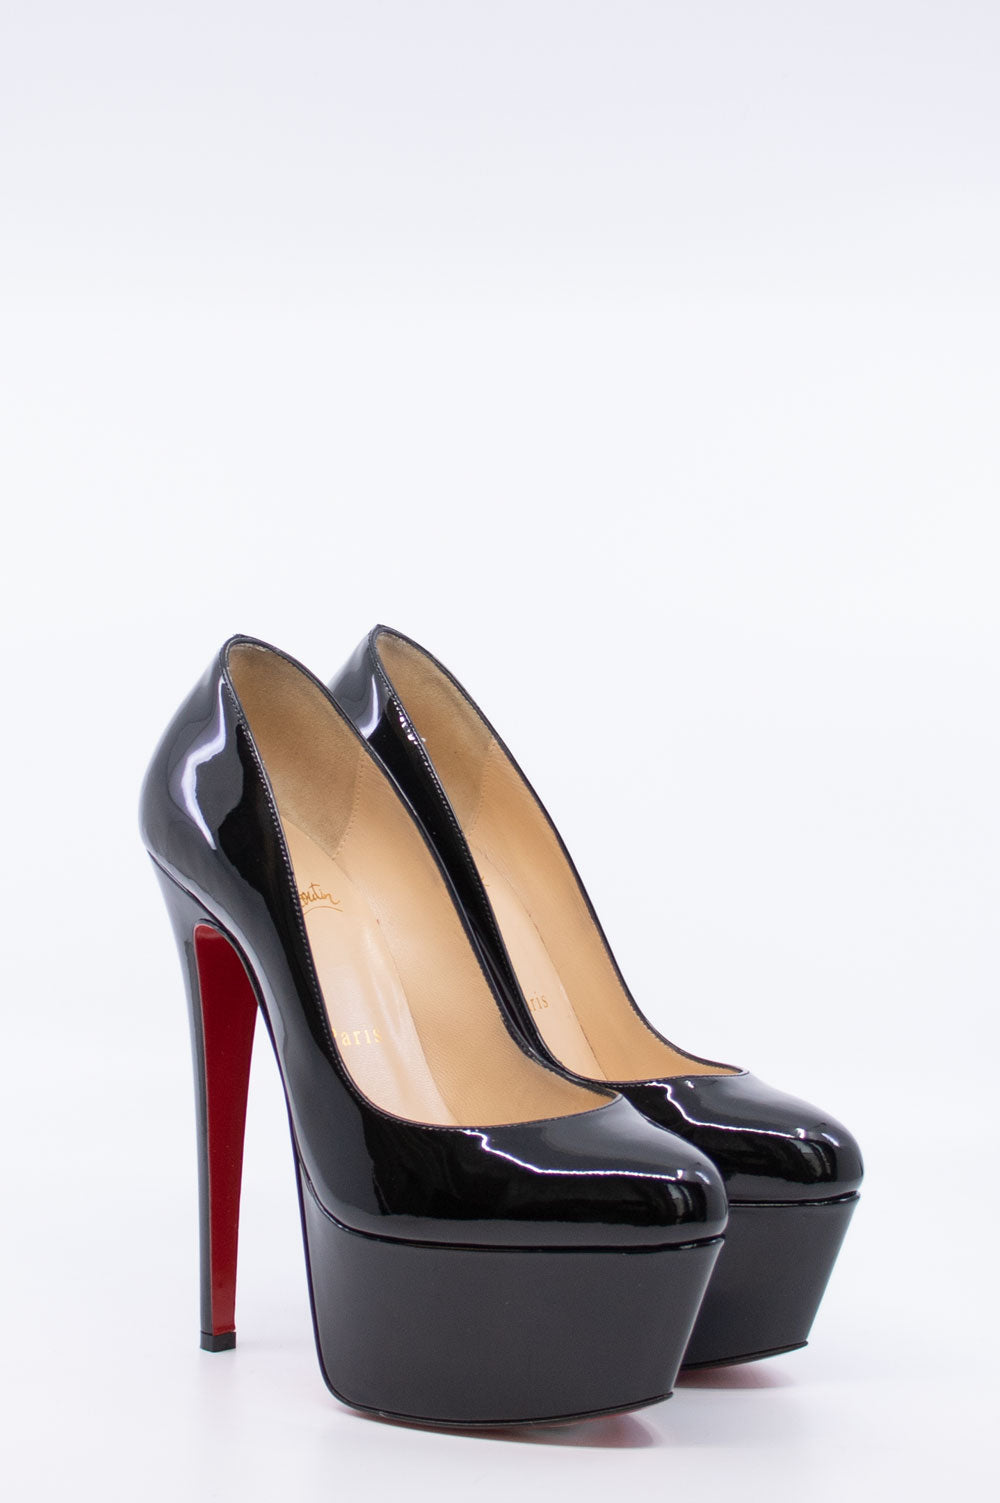 CHRISTIAN LOUBOUTIN Victoria 160 Pumps